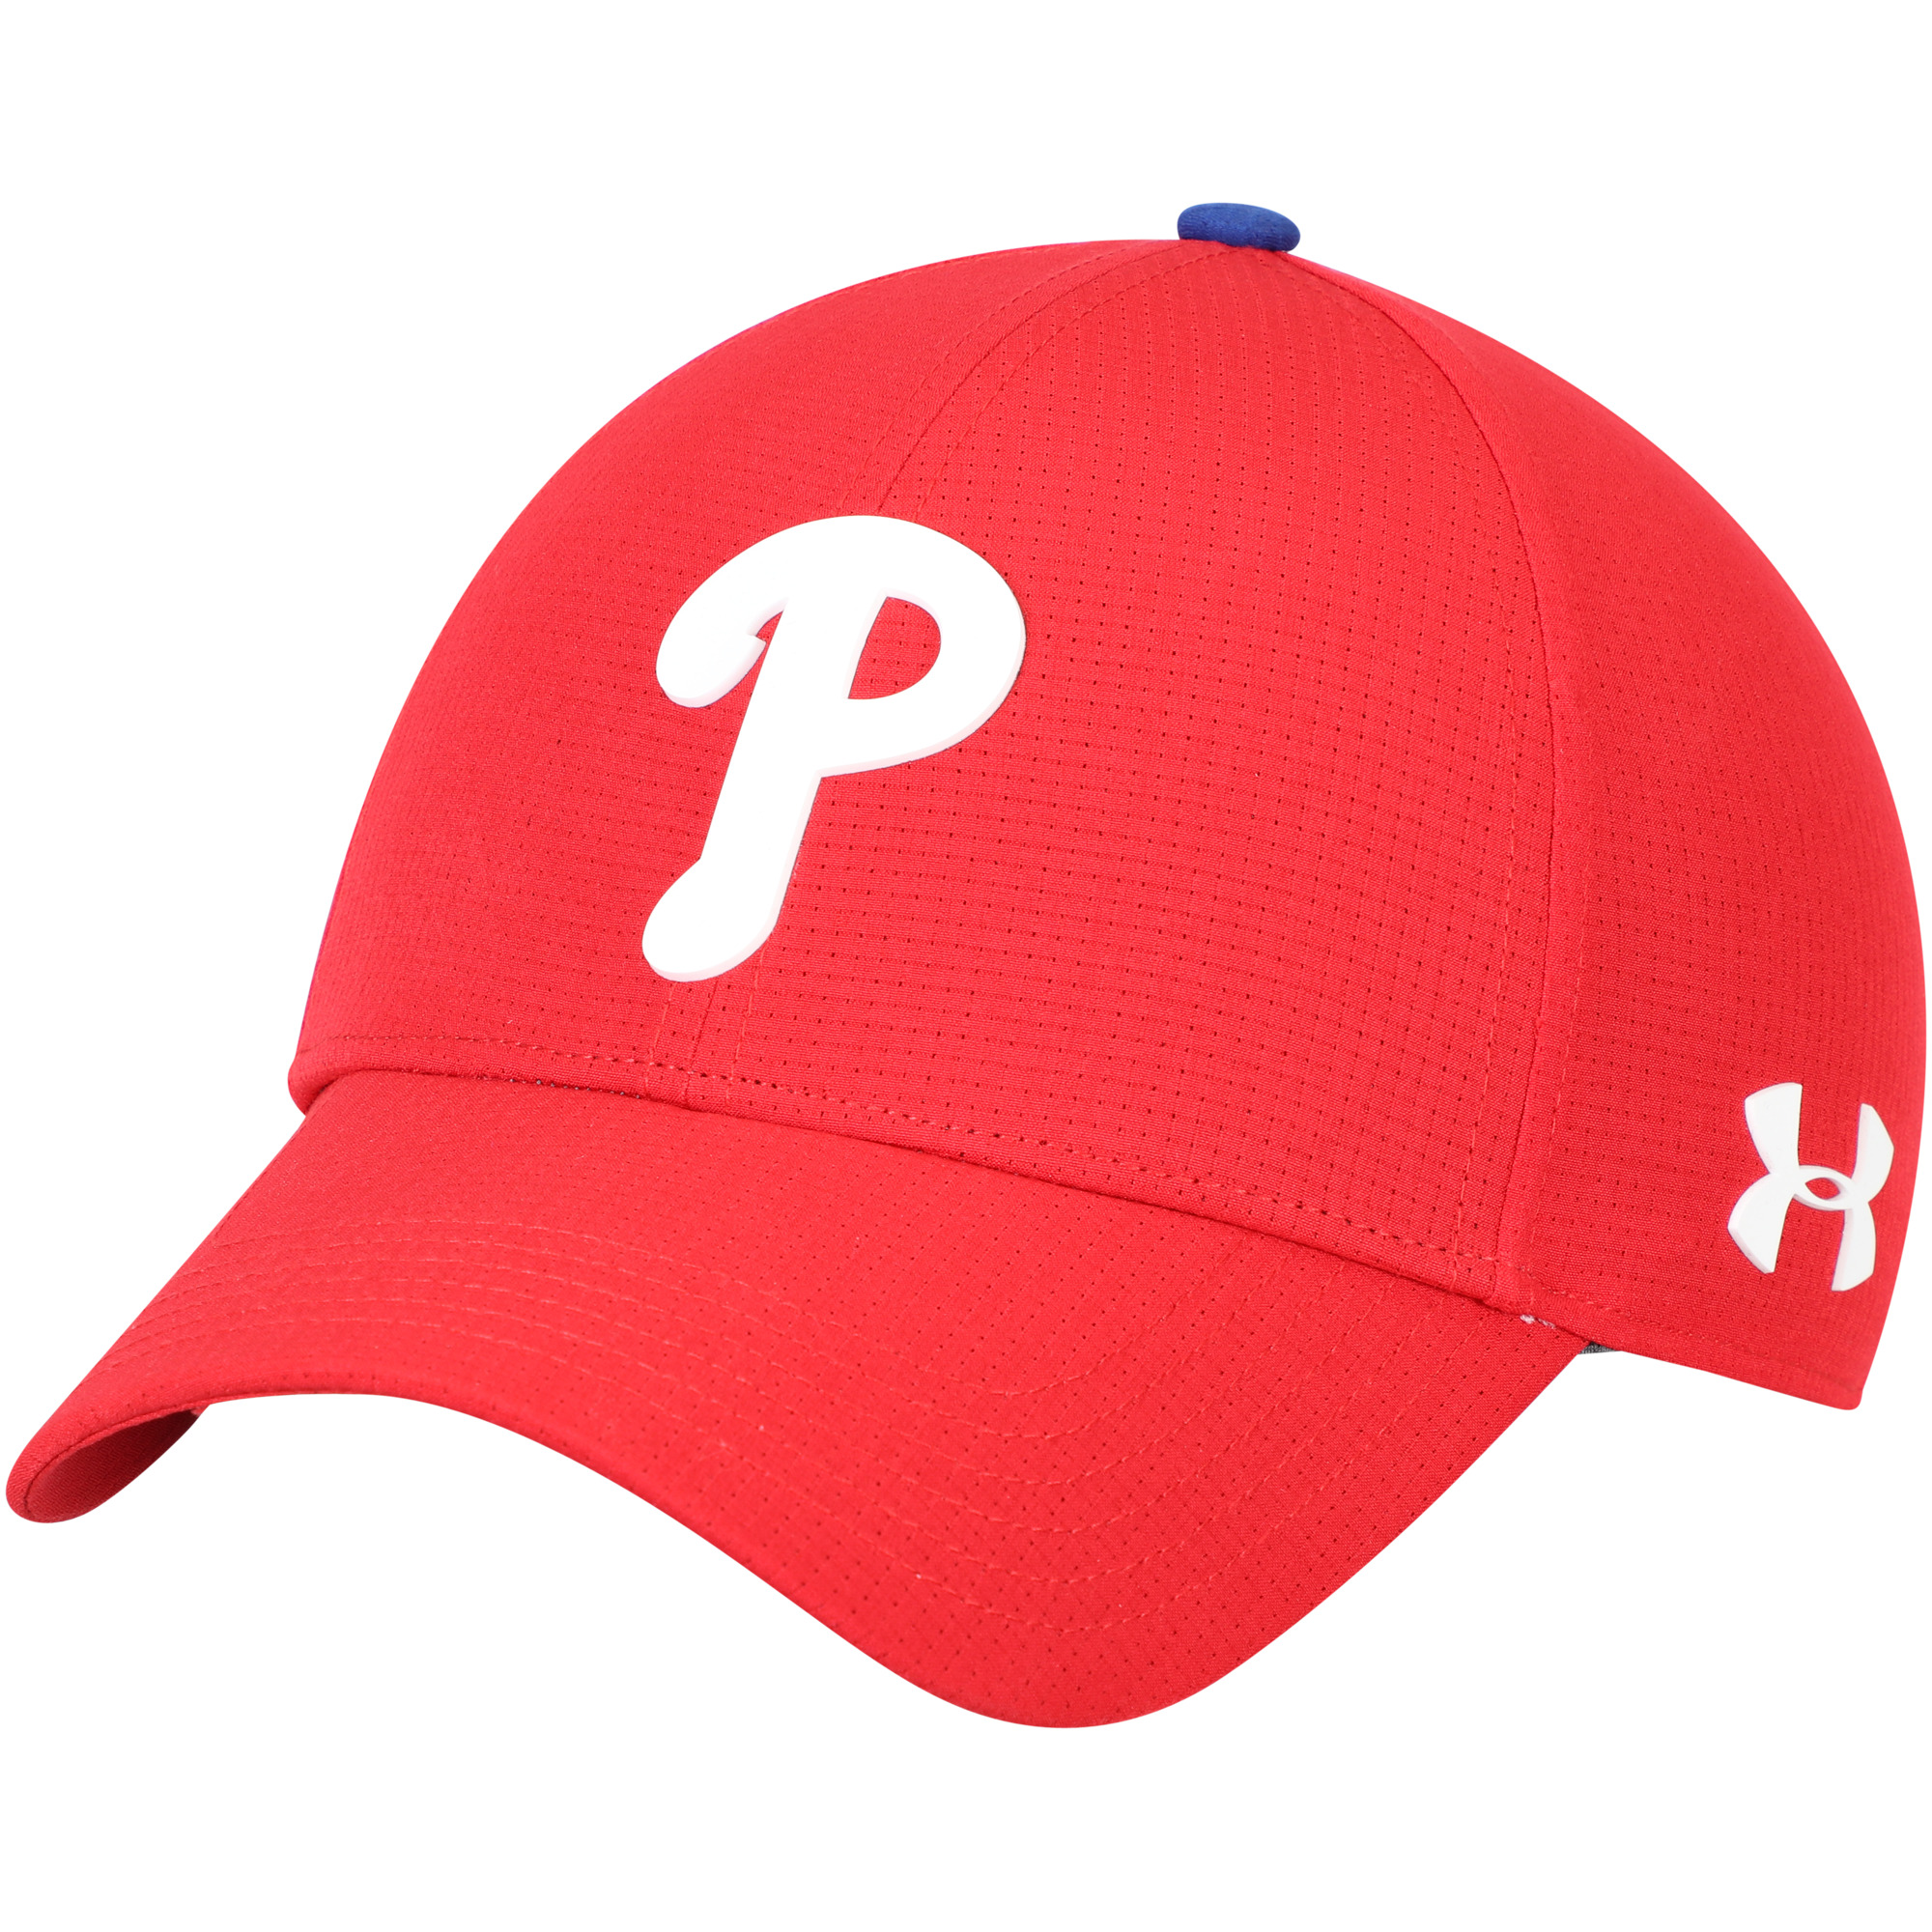 Philadelphia Phillies Under Armour MLB Driver Cap 2.0 Adjustable Hat - Red - OSFA